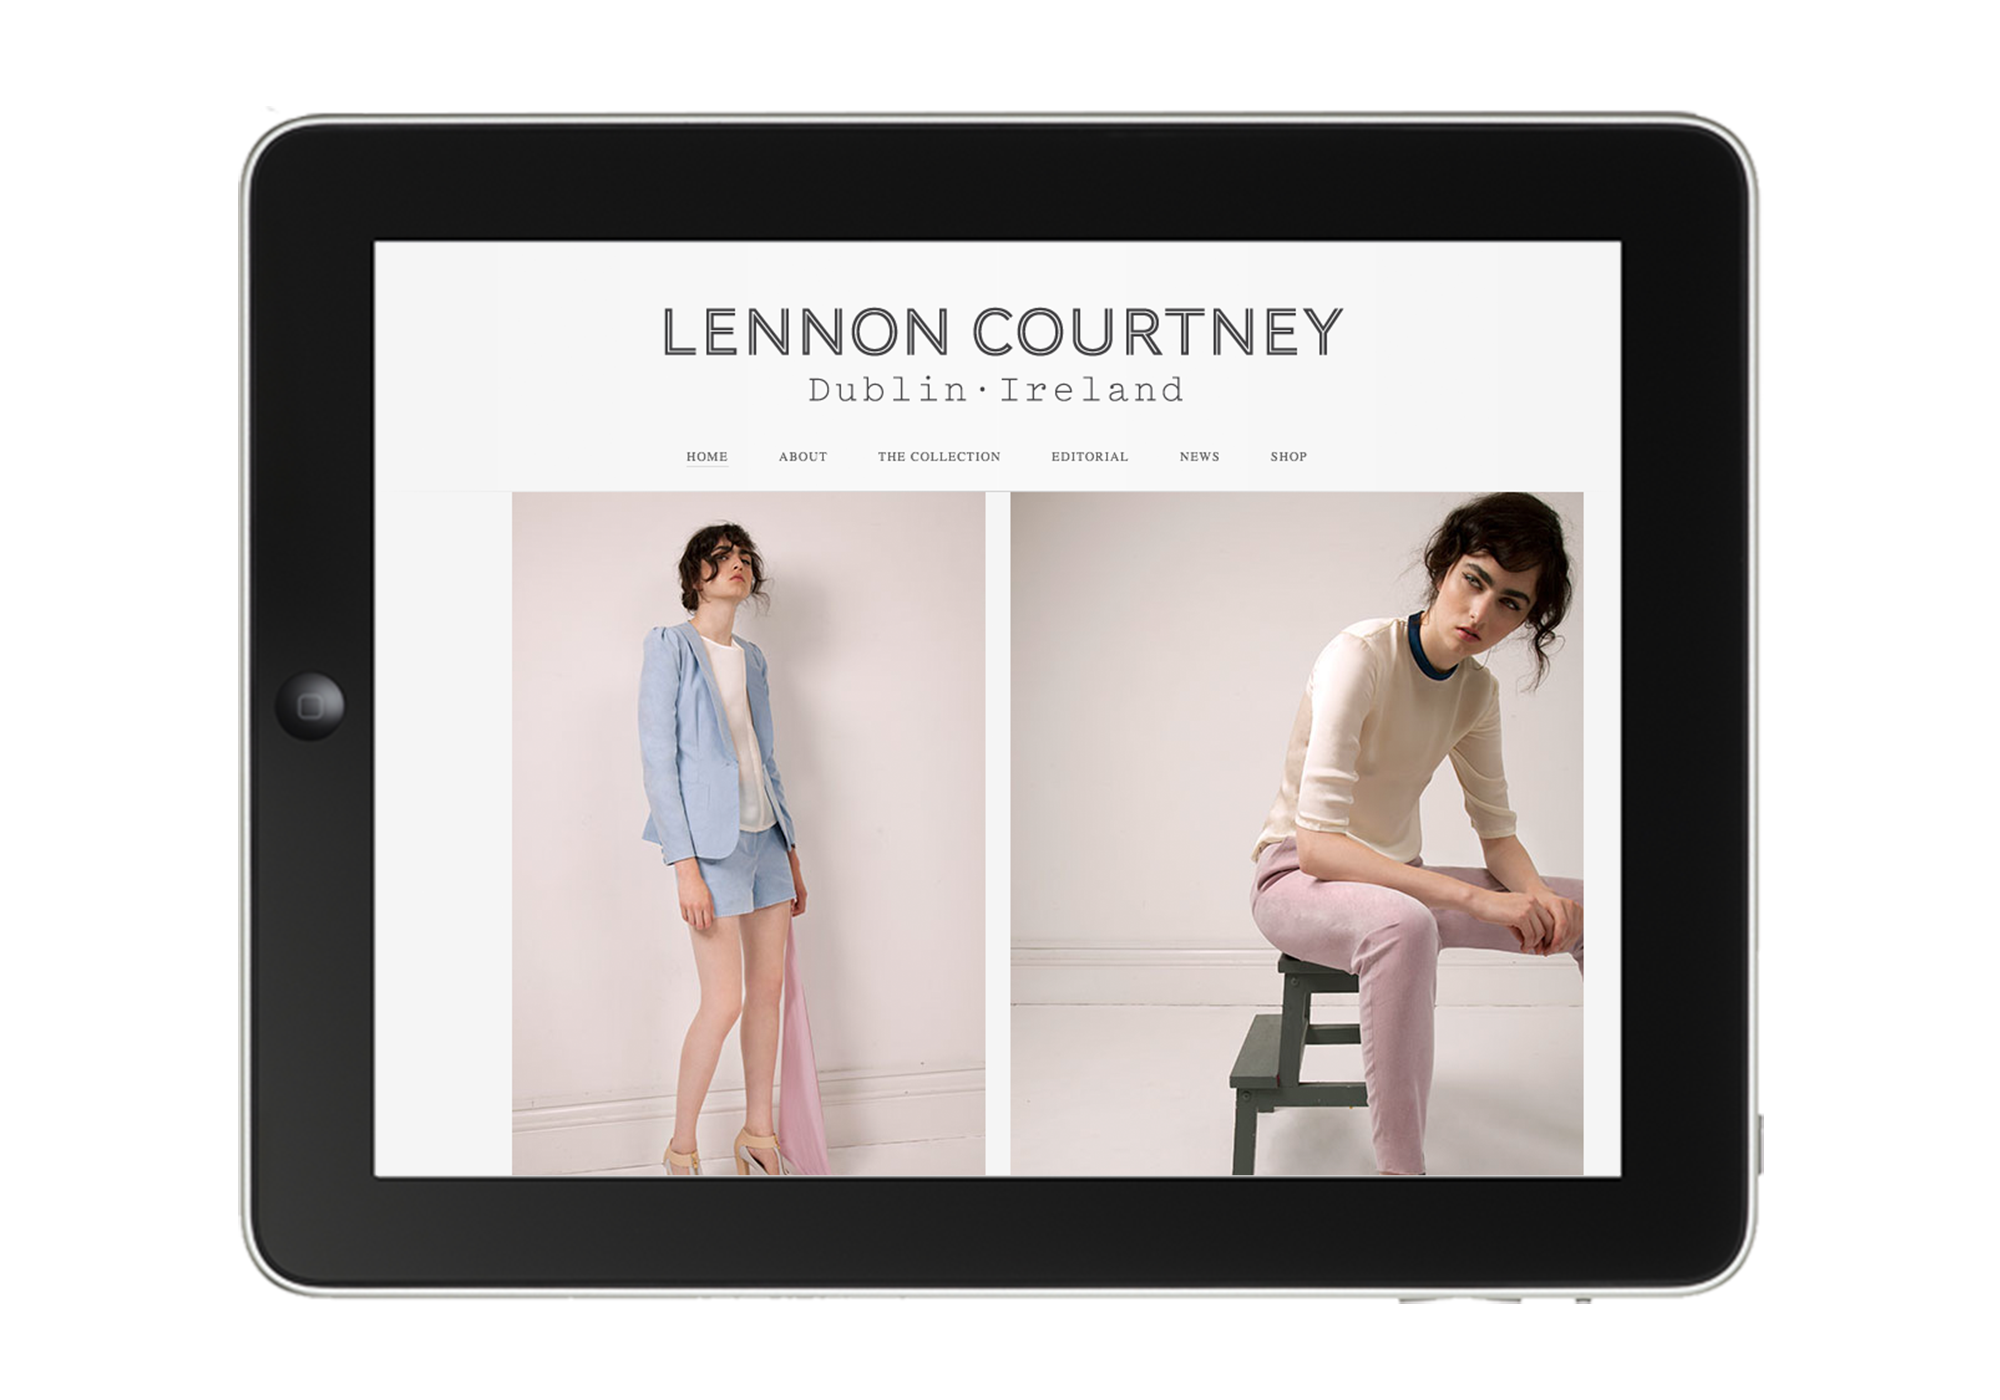 Cover image: Lennon Courtney Website